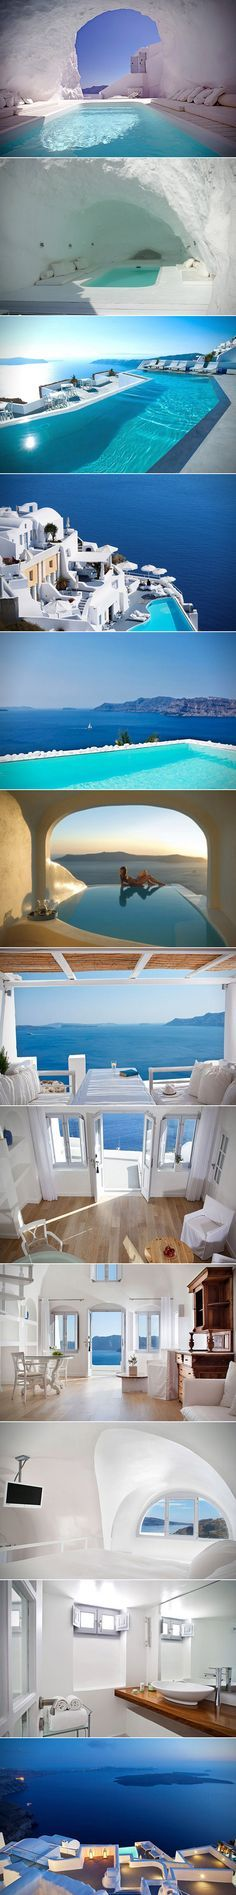 The Katikies Hotel on the beautiful island of Santorini sits atop a cliff overlooking the Santorini caldera basin, offering heart stopping views of the Aegean Sea. Even if it rains, we'd still be in awe of the cave pools and the immaculate white rooms with their elegant touches. With only 27 rooms and suites, it's clear the goal is serenity, not mass occupancy.